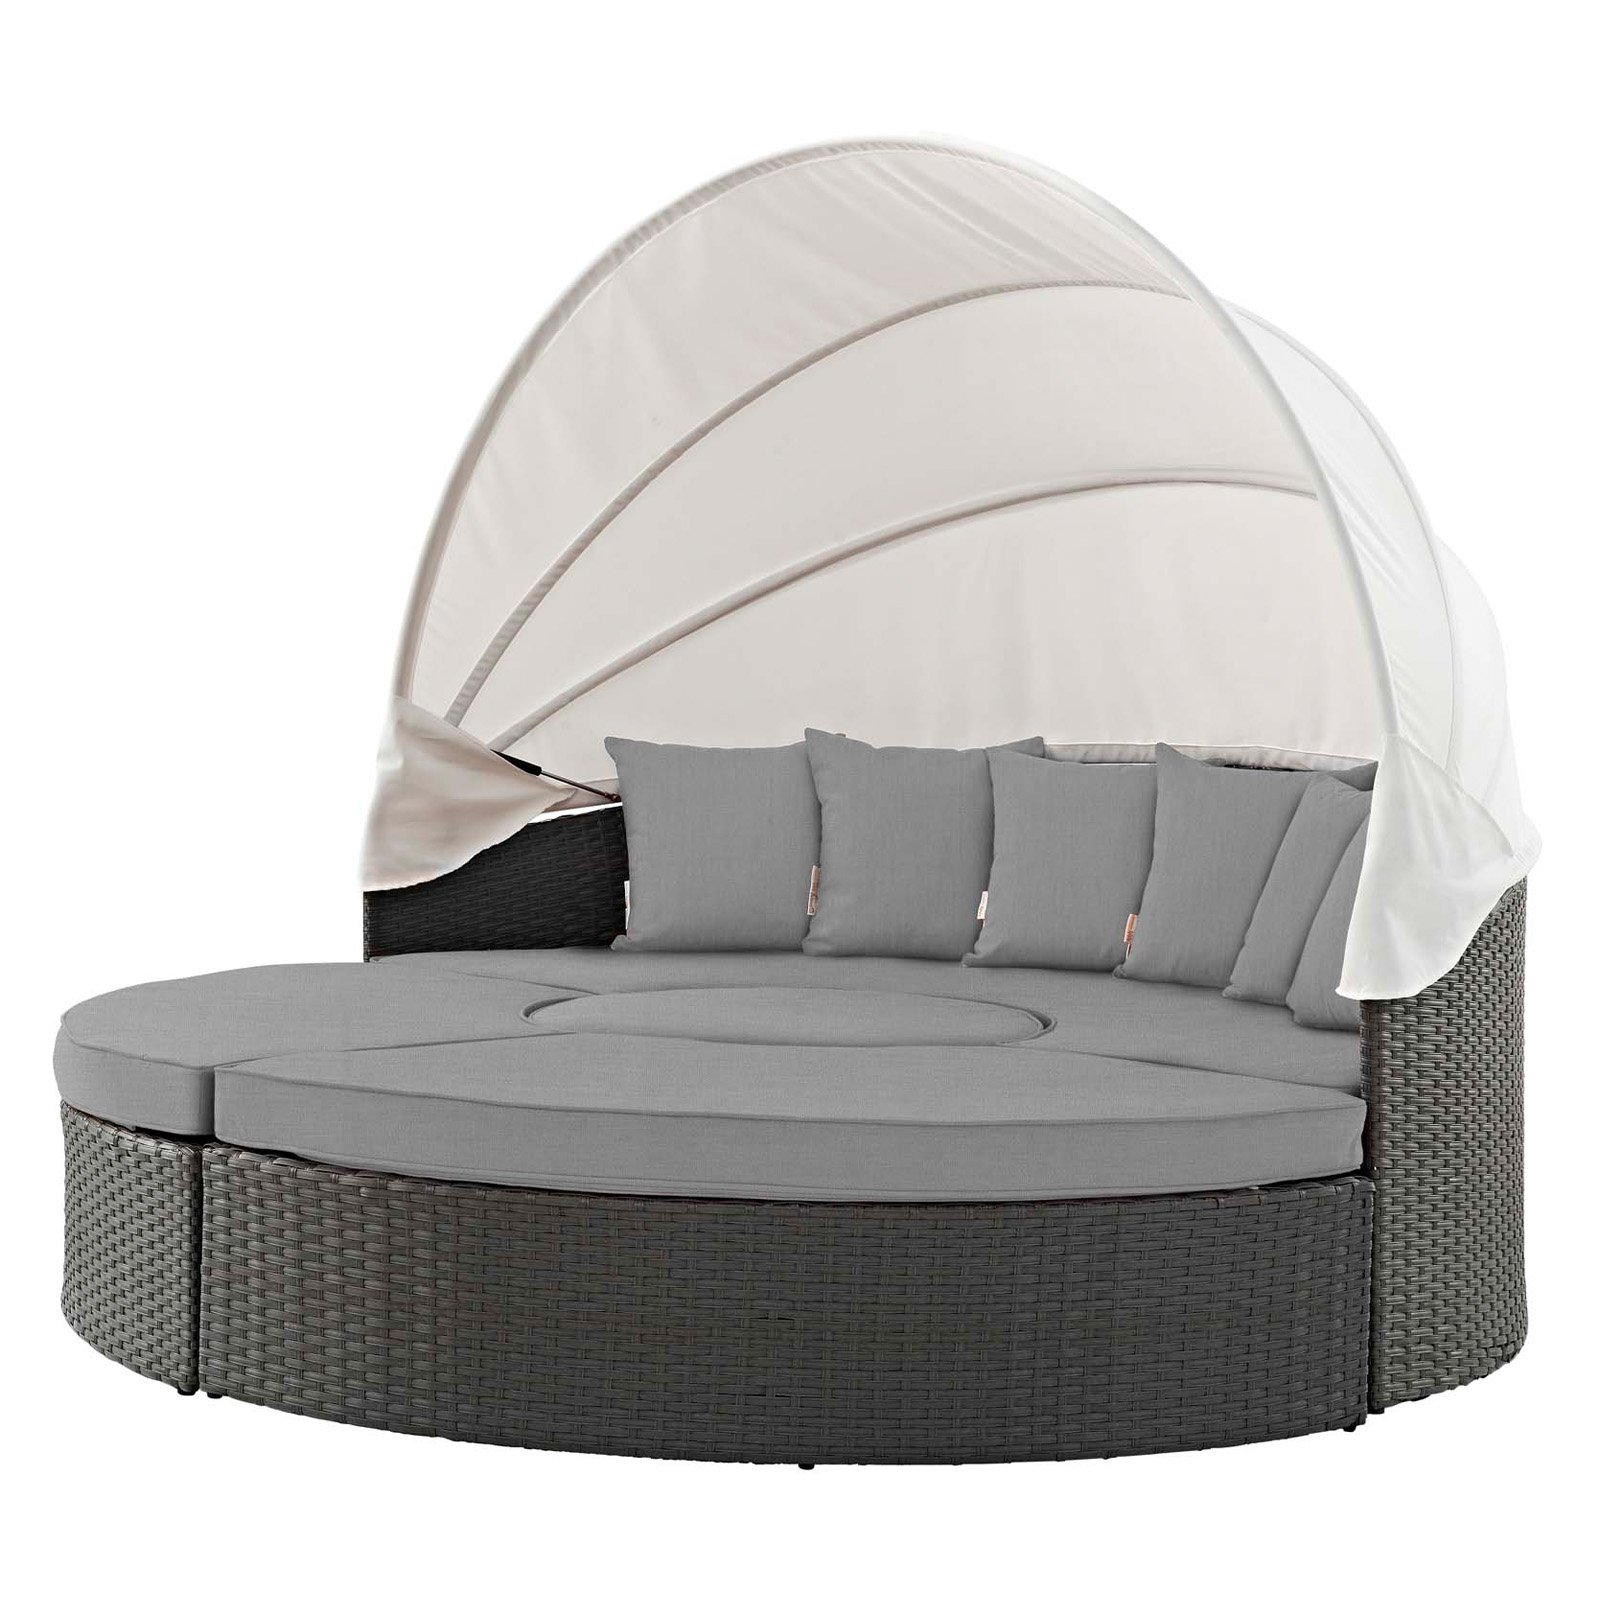 Trendy Outdoor Modway Sojourn Wicker Patio Daybed With Canopy With Within Harlow Patio Daybeds With Cushions (View 15 of 20)